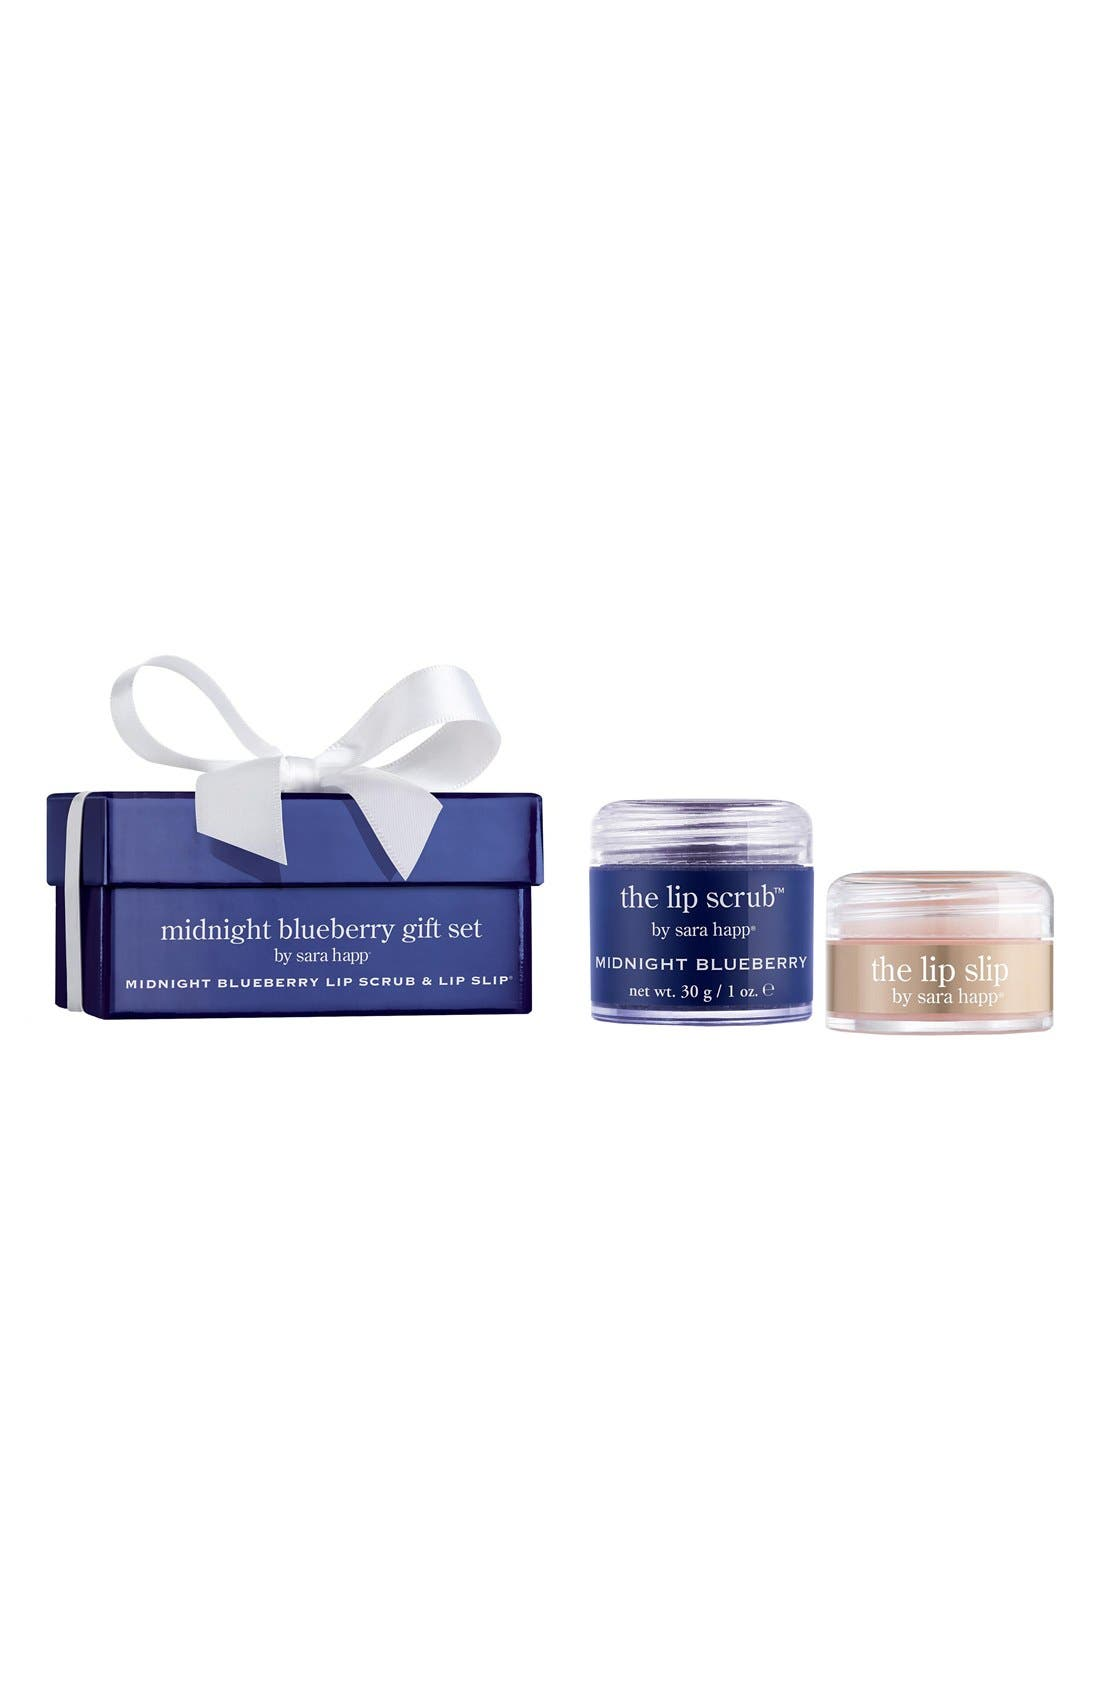 sara happ® Midnight Blueberry Set (Limited Edition) ($48 Value)